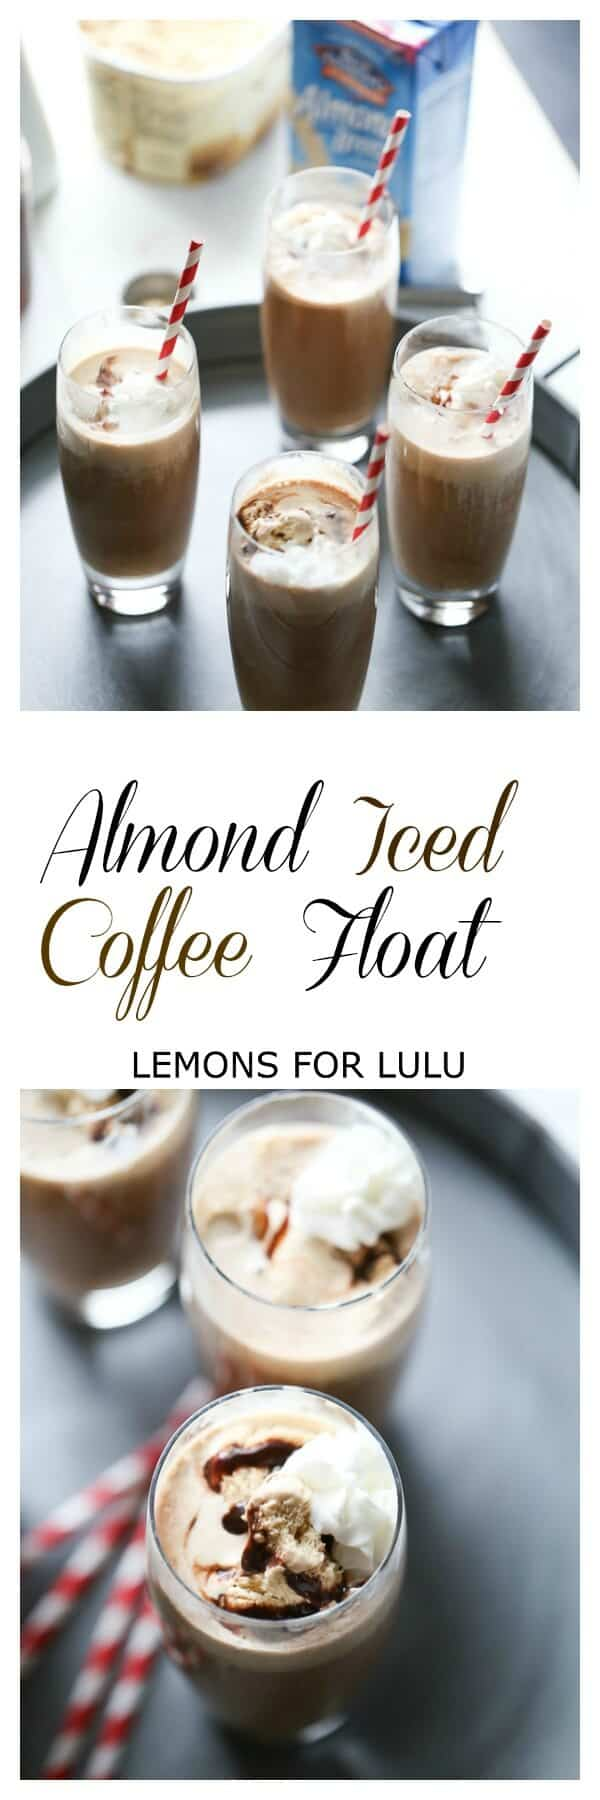 Need an afternoon pick me? This easy almond iced coffee float is all you need! Brewed coffee, unsweetened vanilla almond milk, chocolate and coffee ice cream are all that stand between you and happiness! lemonsforlulu.com #ad